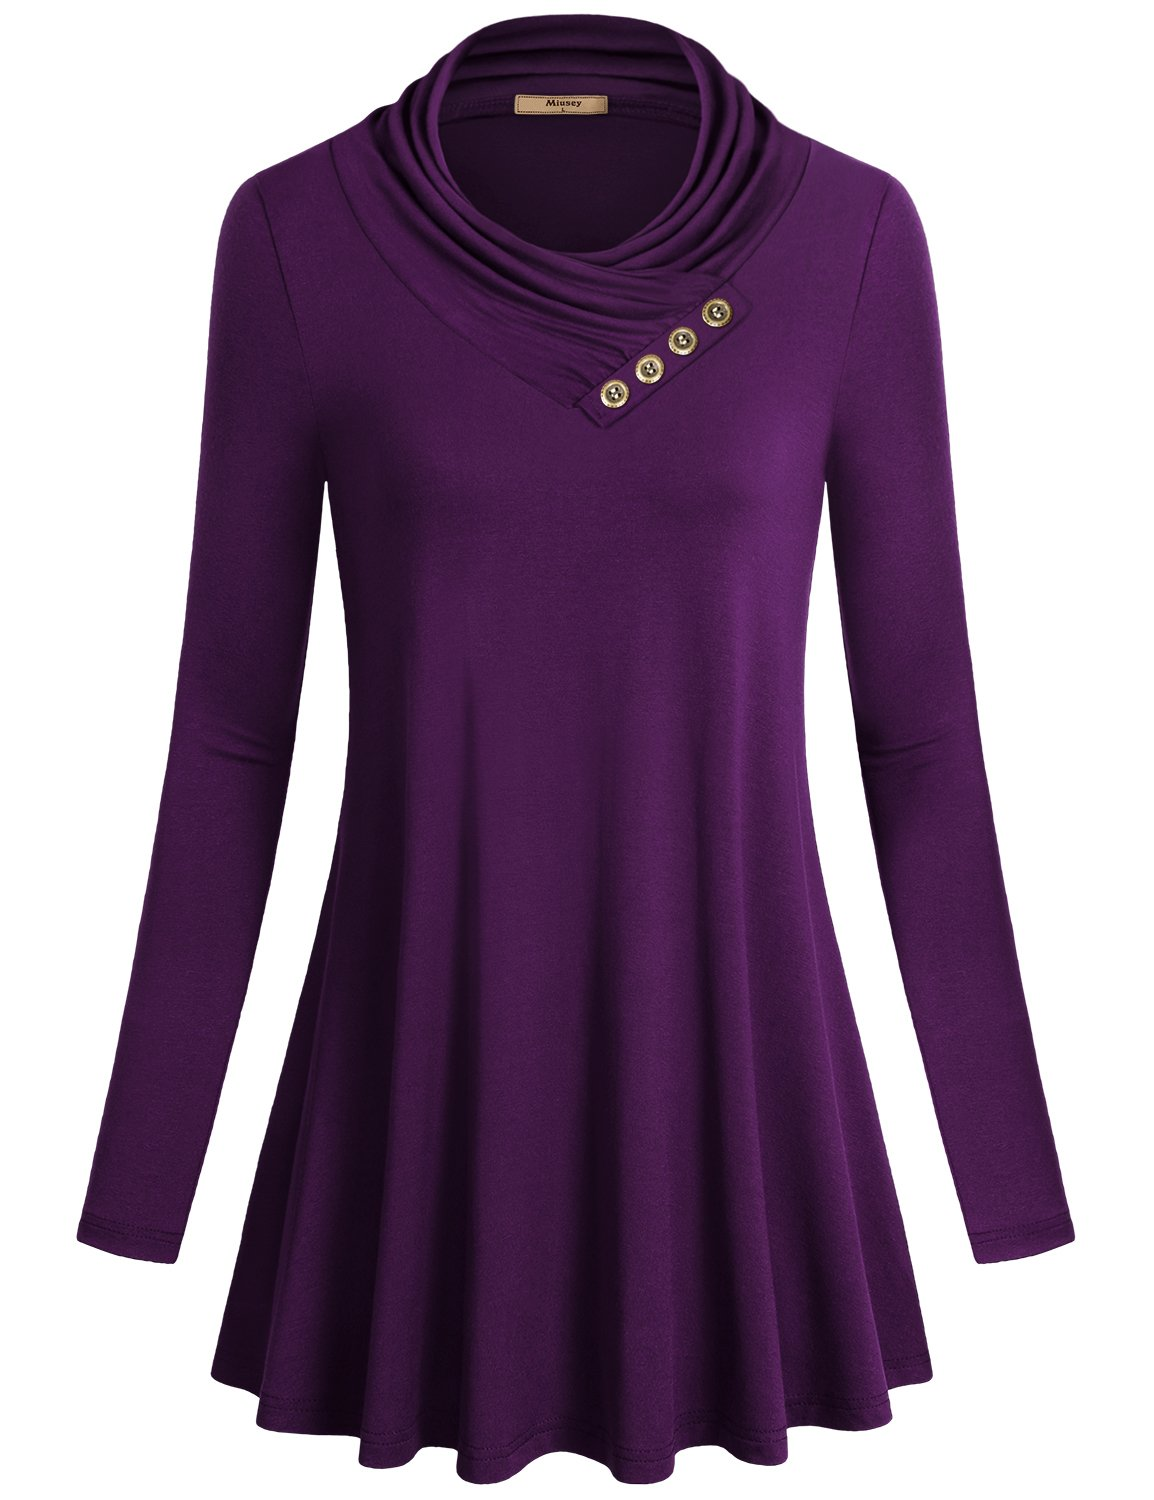 Miusey Long Sleeve T Shirt Women, Casual Juniors Cowl Neck Loose Fit Tunic Jersey Swing Top Purple Large